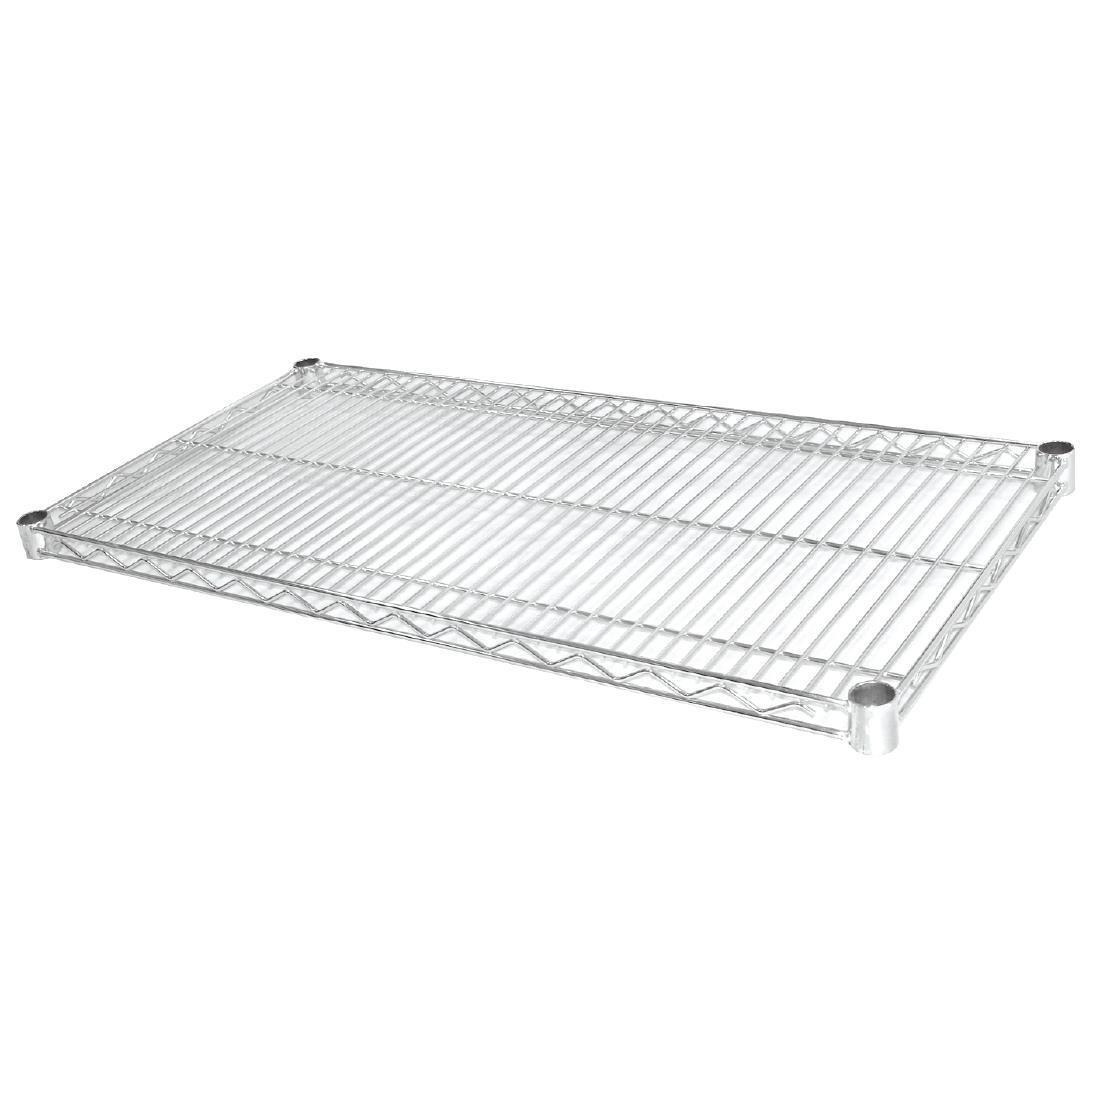 Vogue Chrome Wire Shelves 1525x457mm Pack of 2 - U891